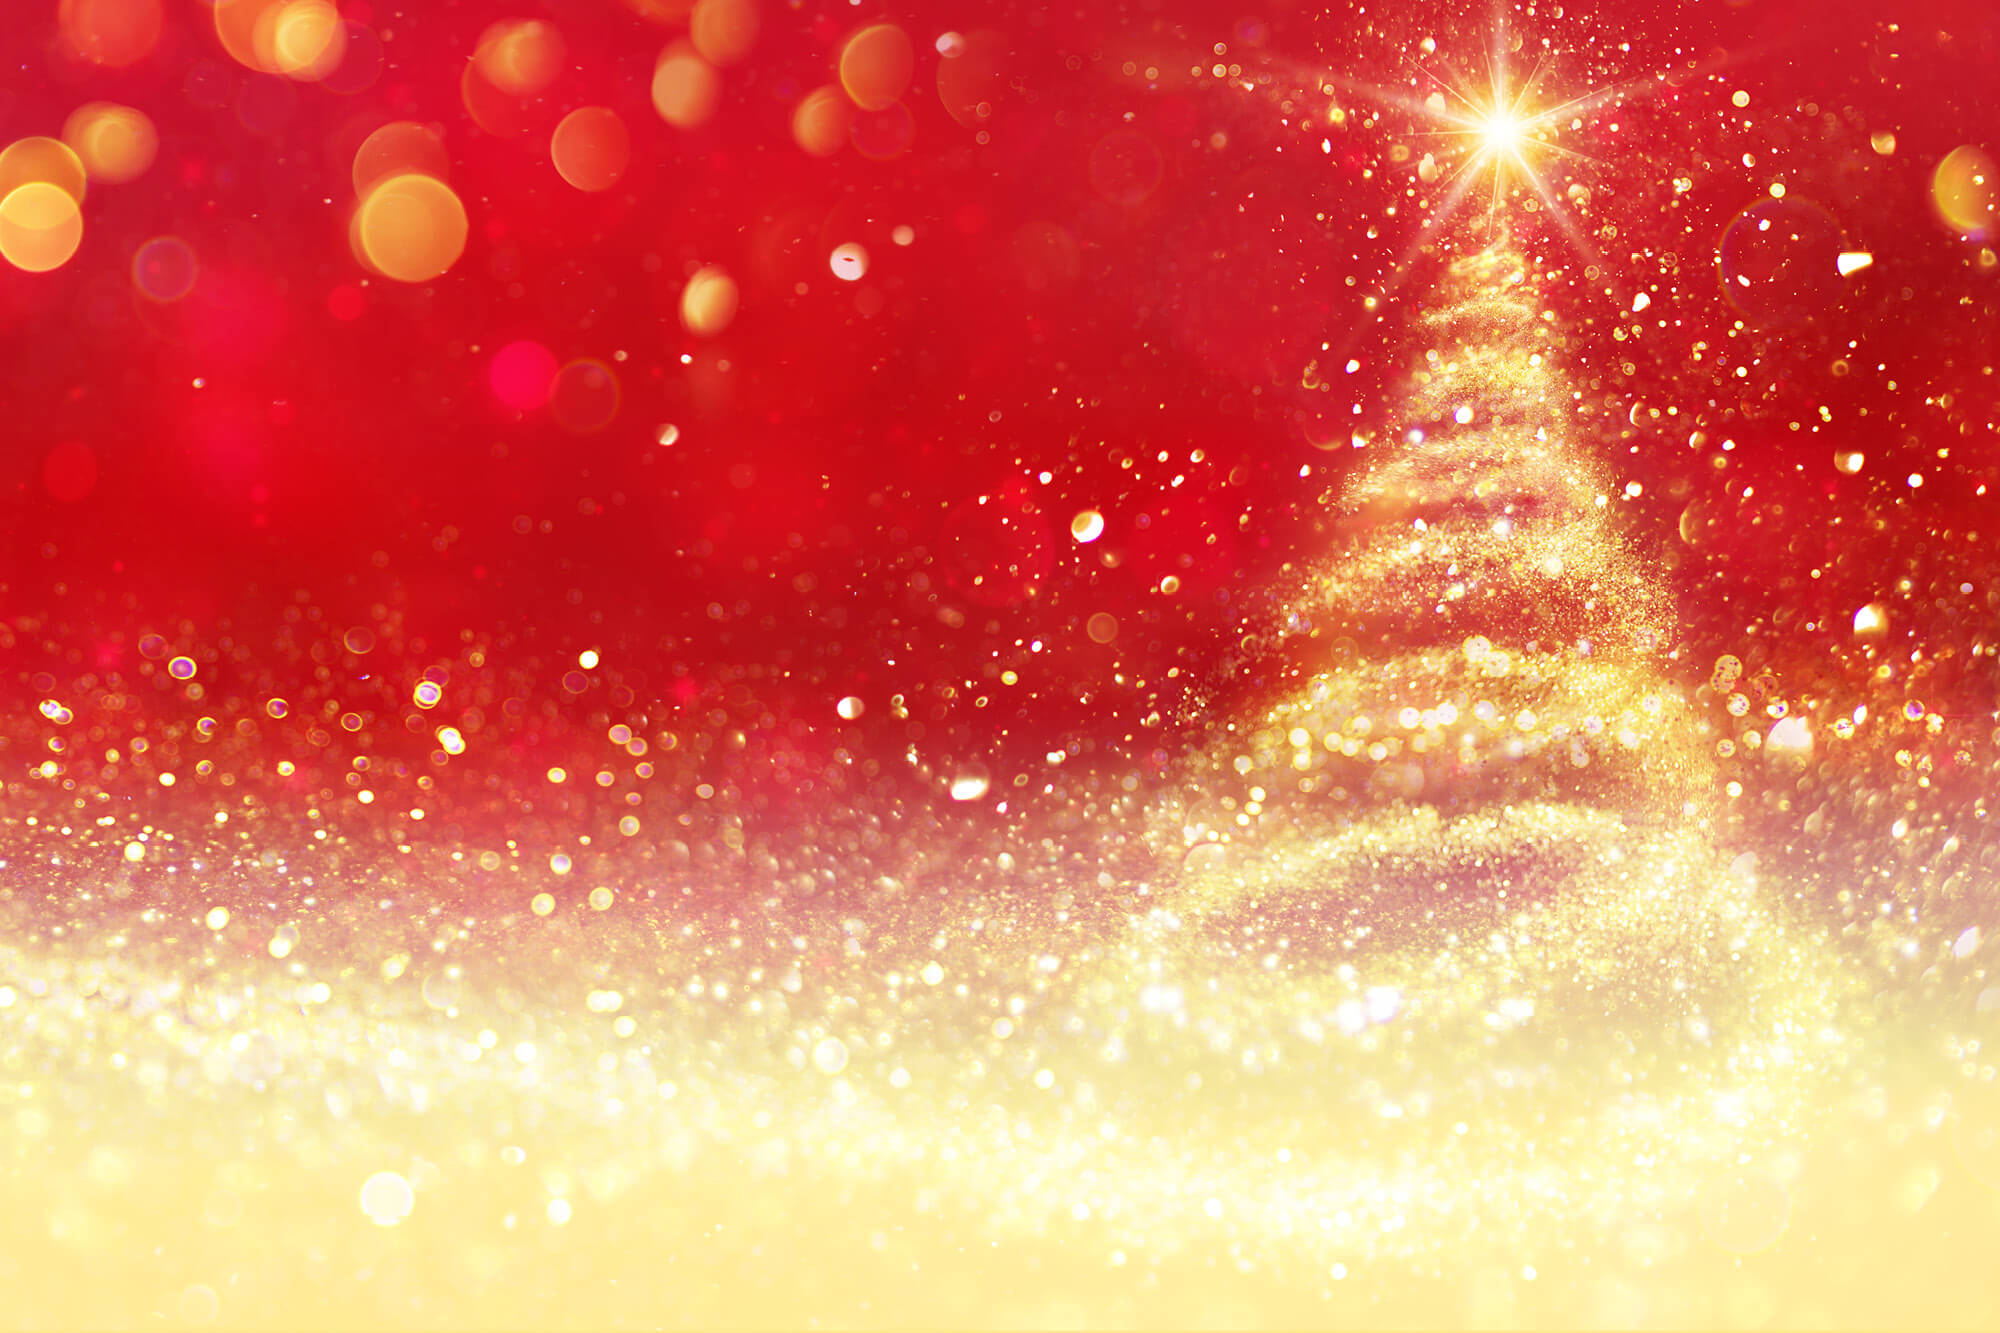 Red and gold digital image of a Christmas tree.